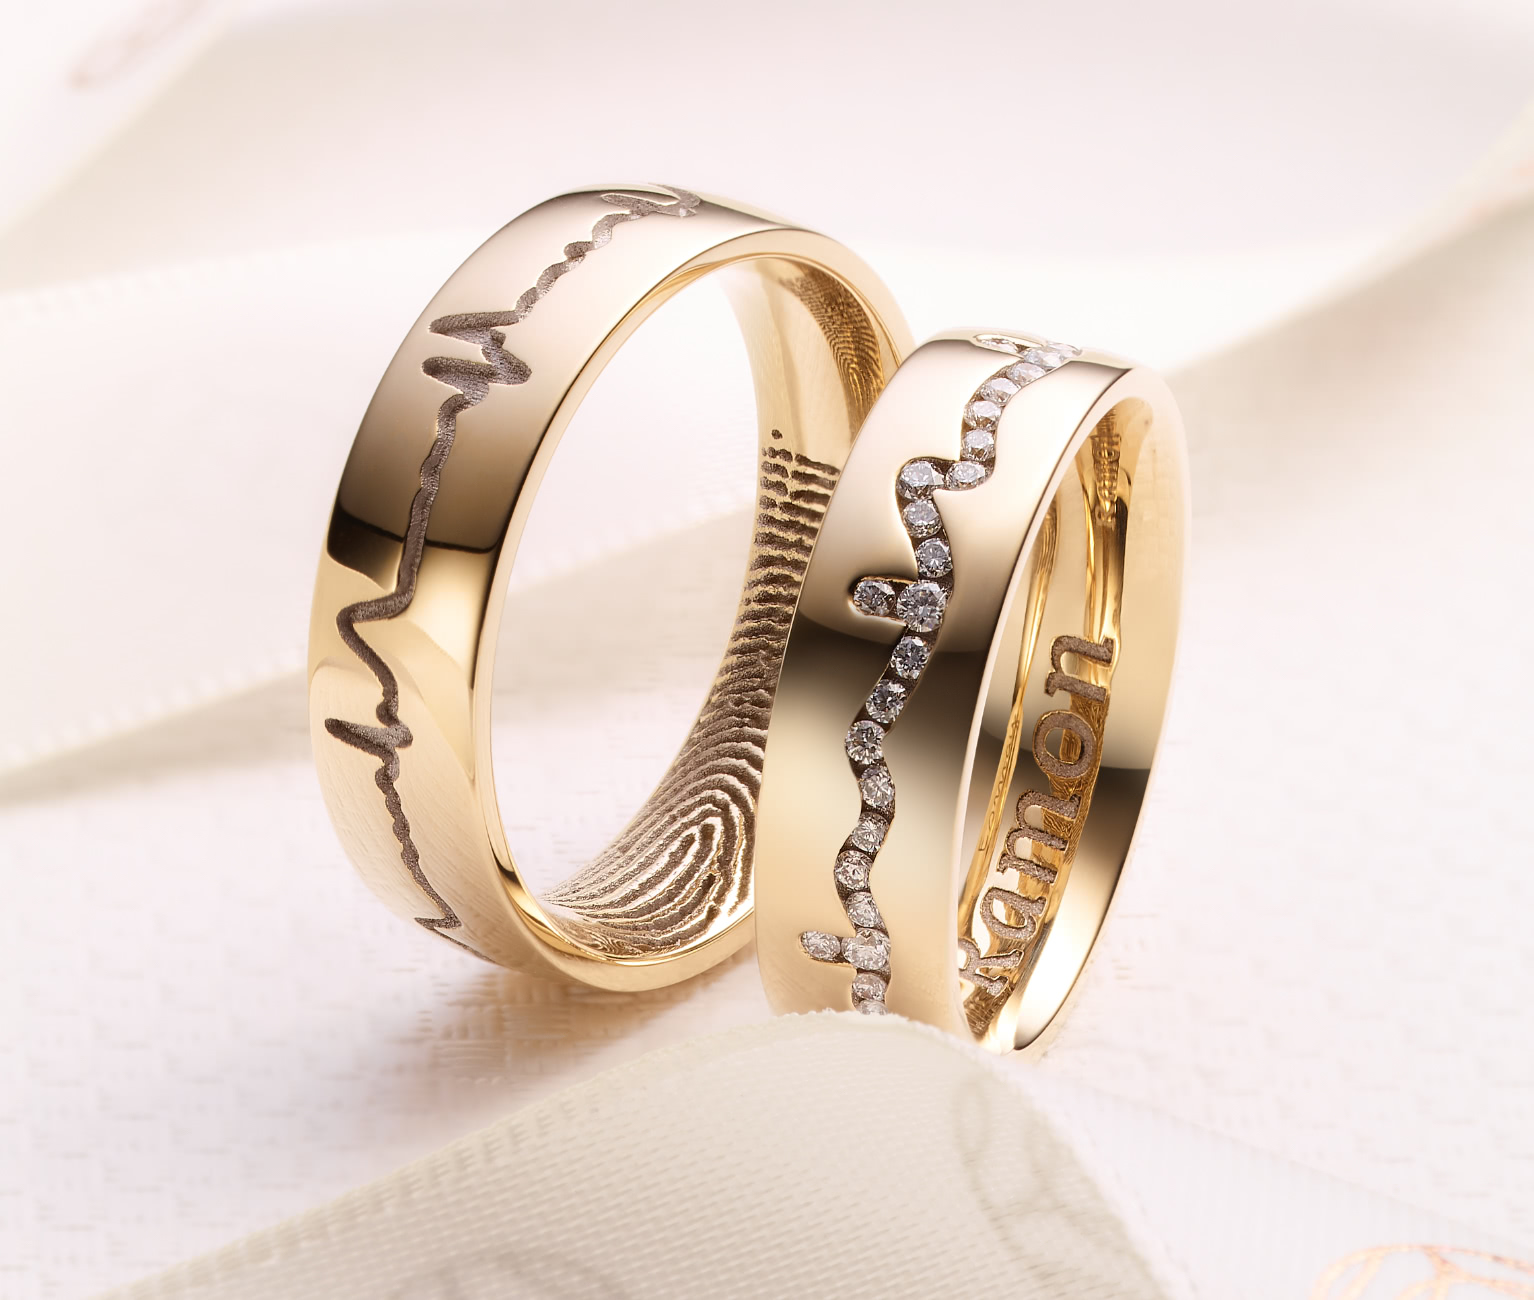 rings custom cheshire shaped wedding fingerprint cooljoolz